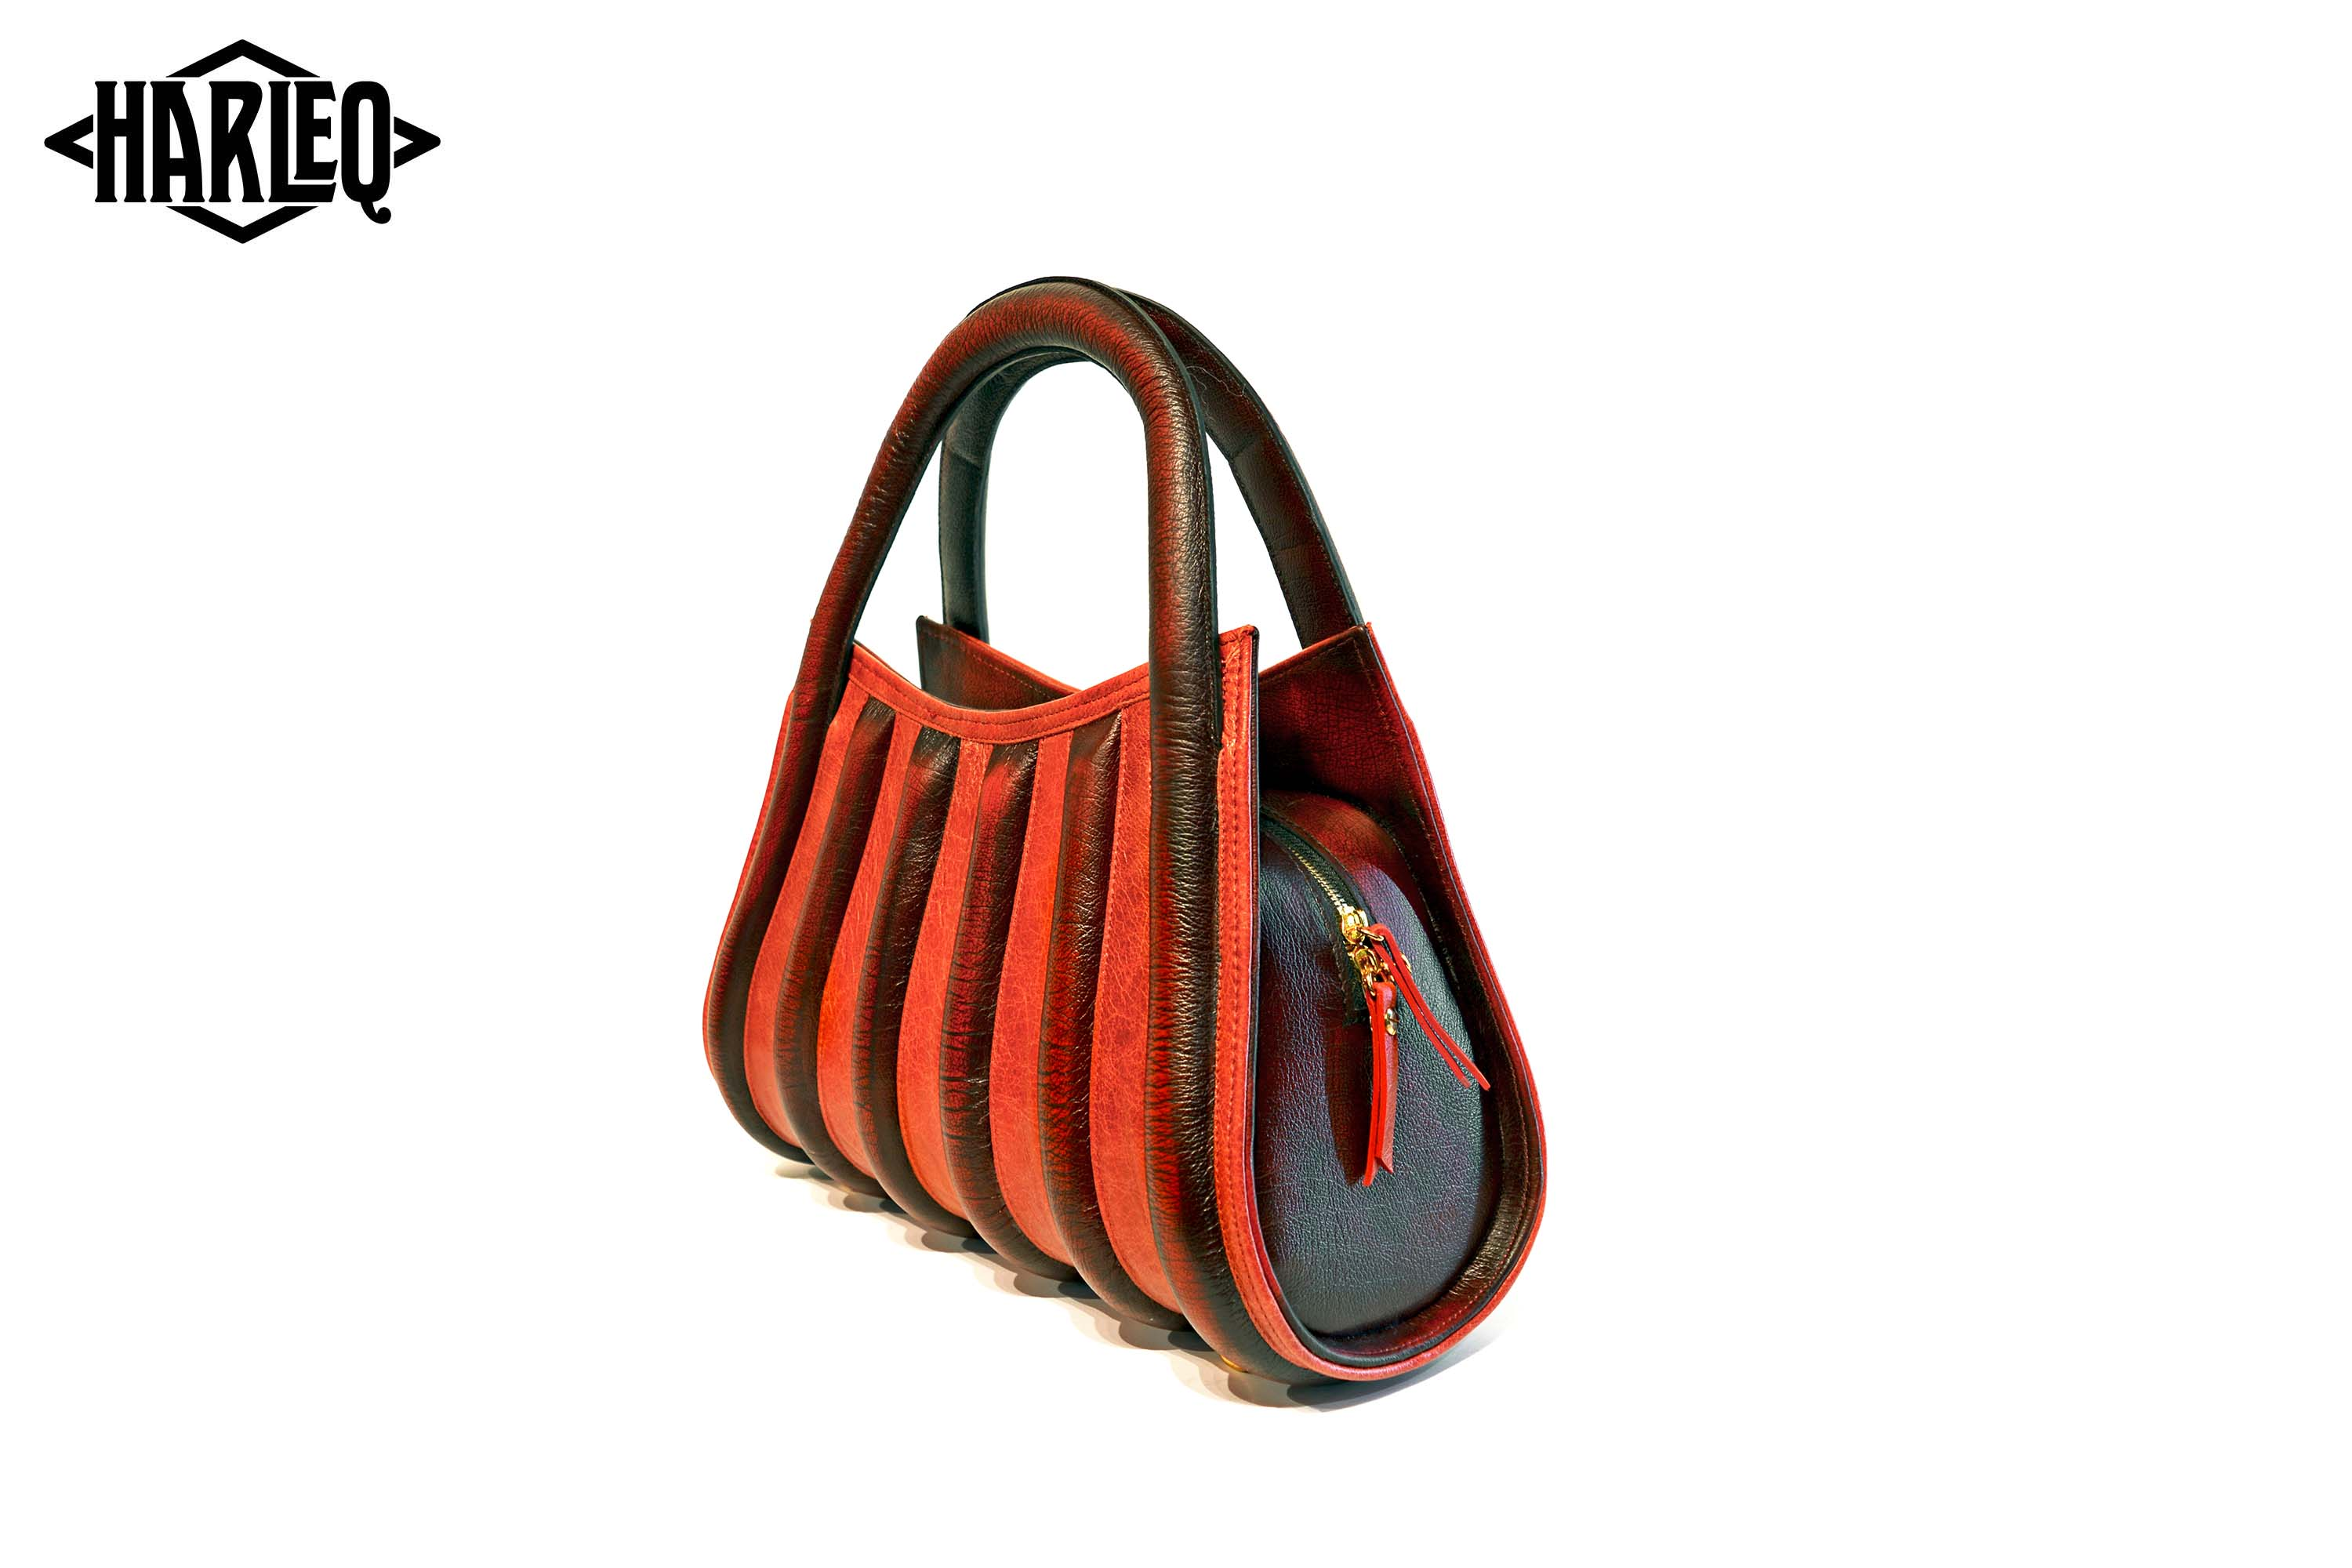 harleq the spine red luxury bag